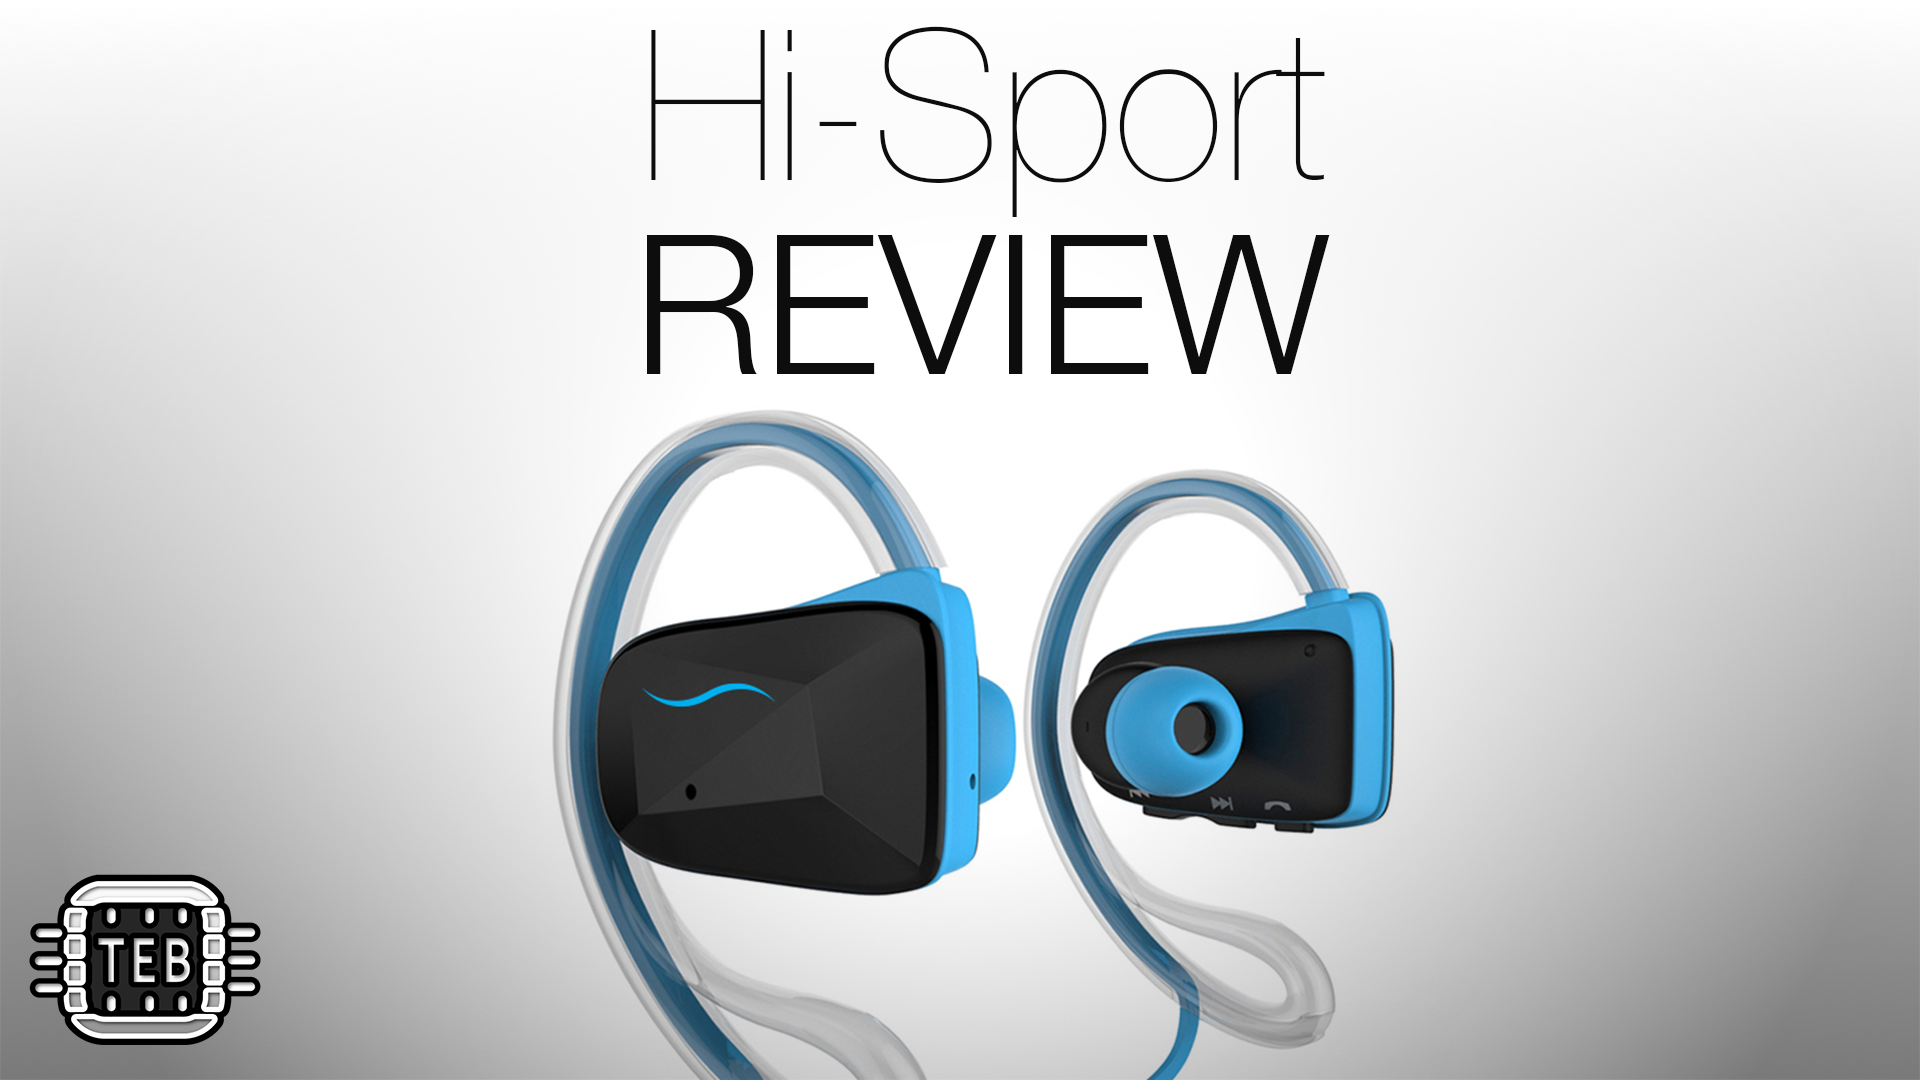 Cuffie Bluetooth Hi-Sport di Hi-Fun: la REVIEW di TechEarthBlog [VIDEO]